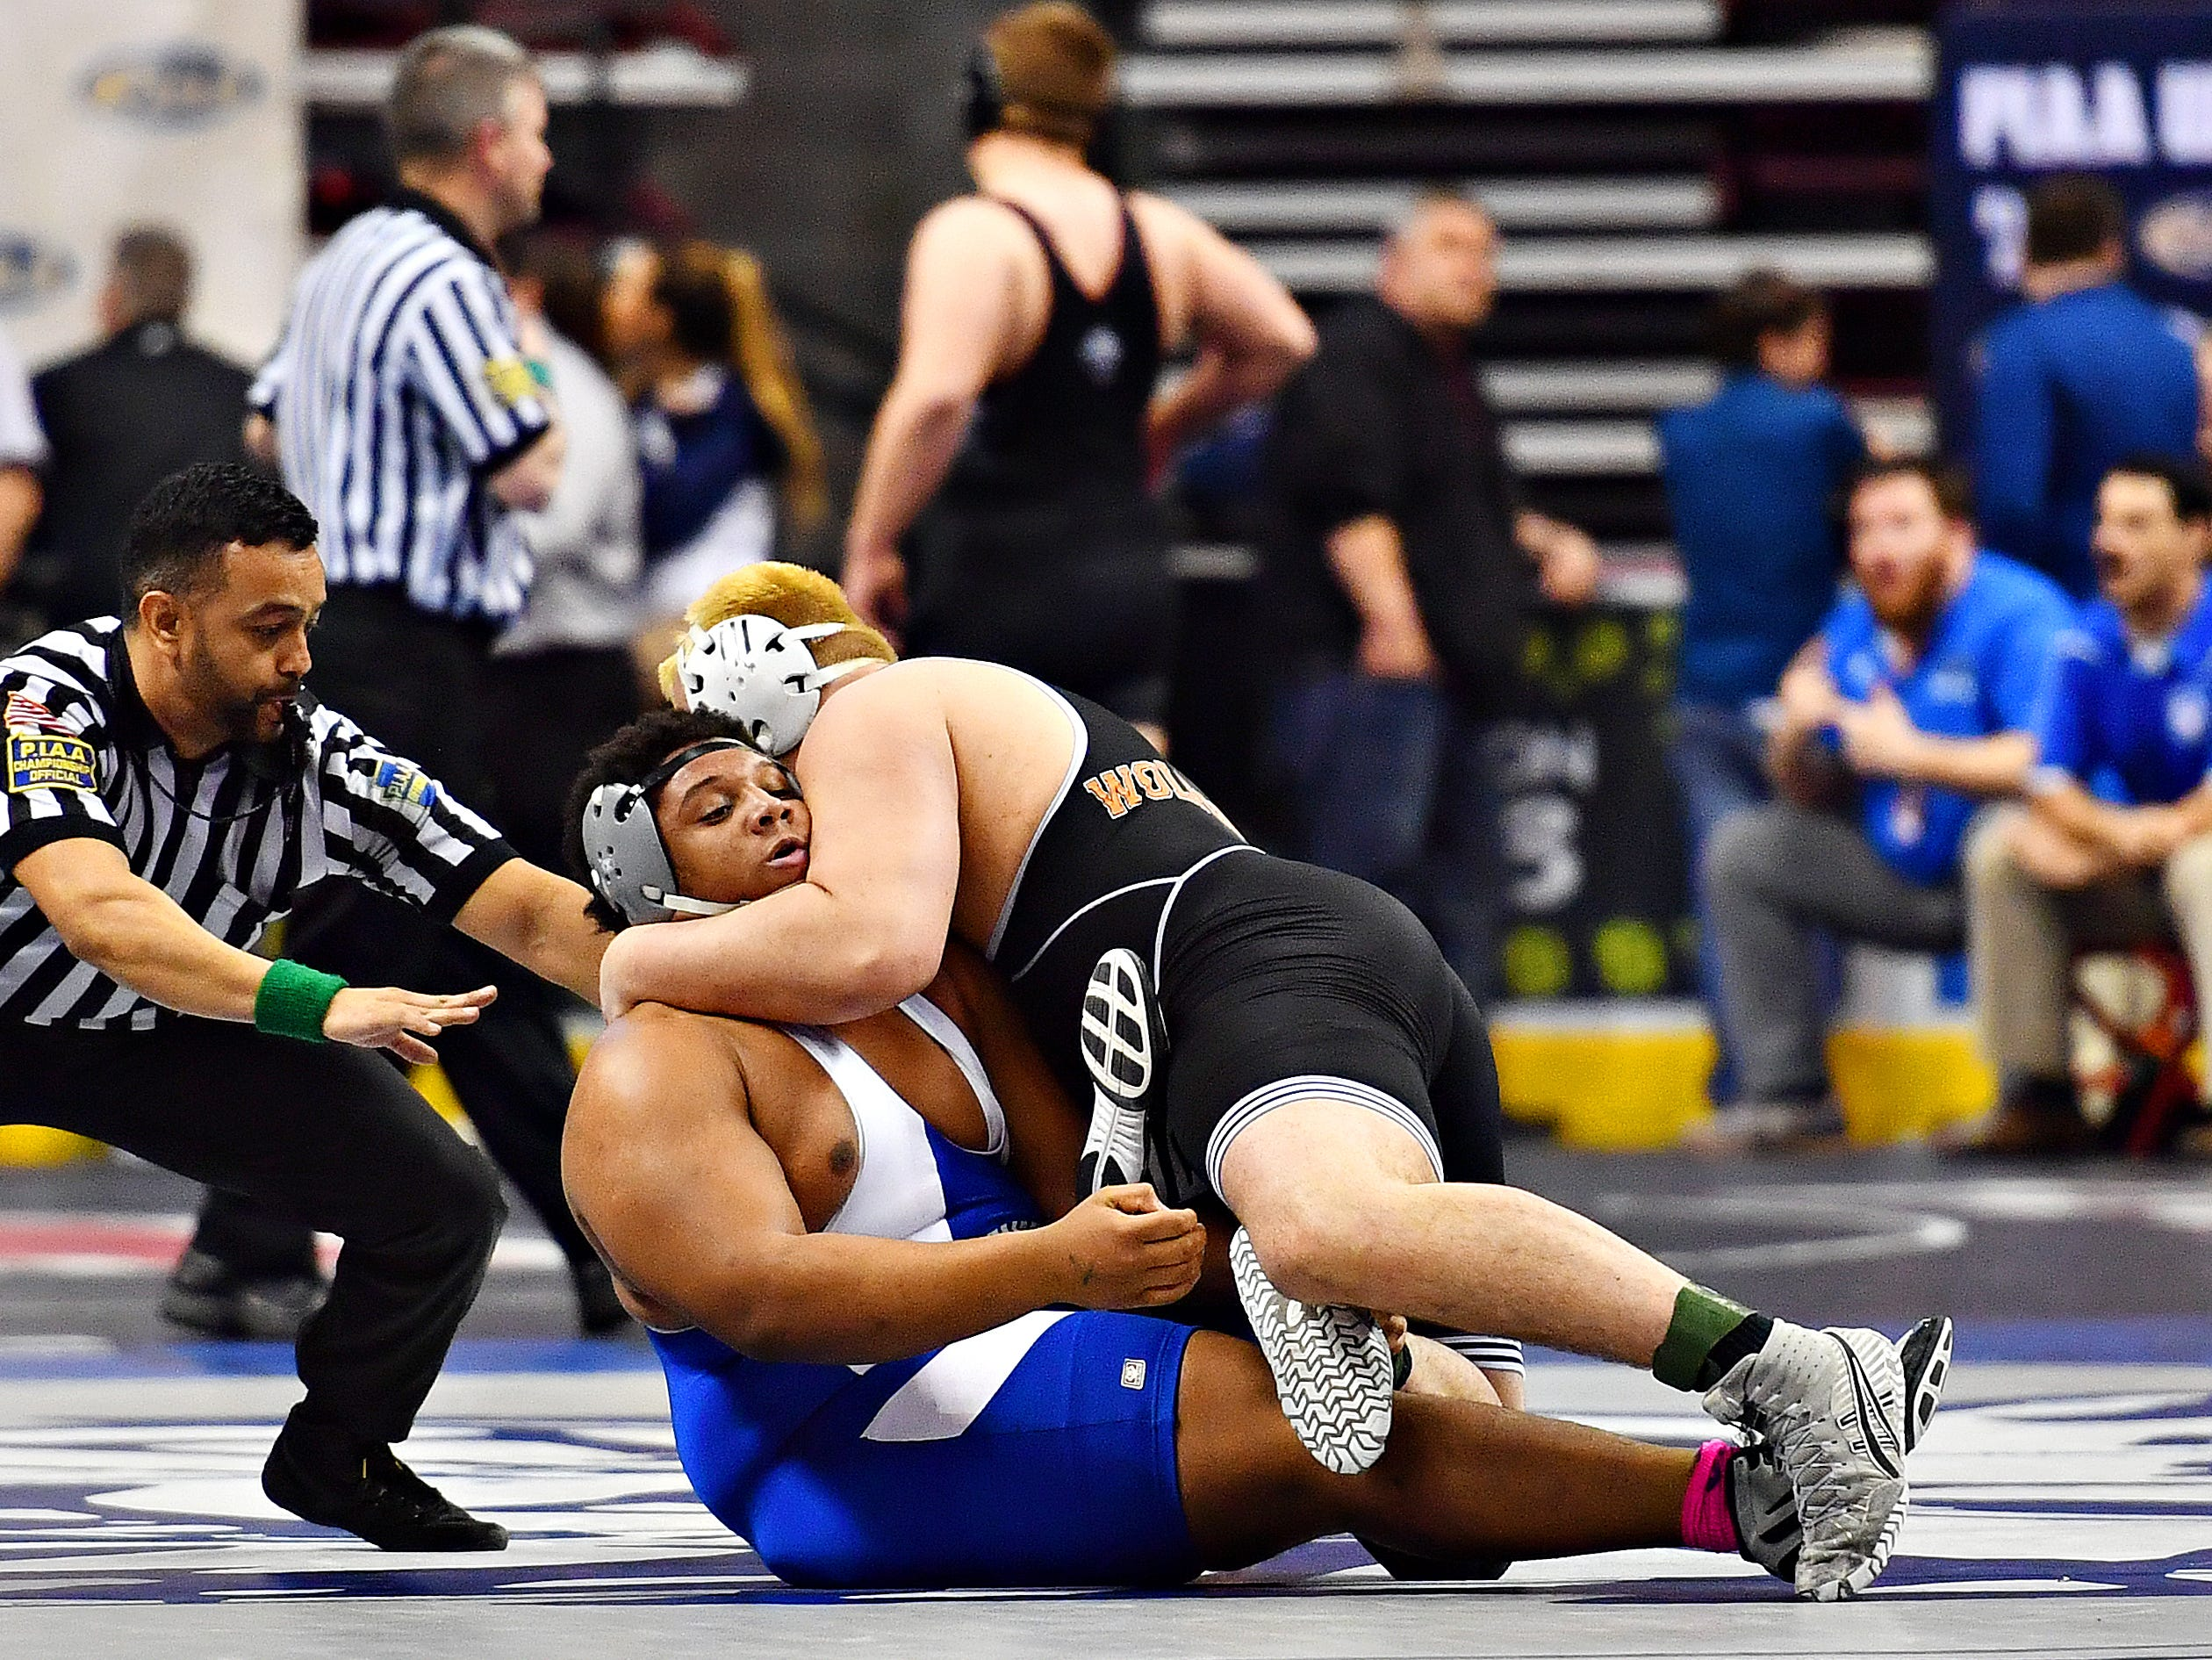 Central York's Michael Wolfgram, right, wrestles Hempfield's Isaiah Vance in the 285 pound weight class during PIAA 3A Individual Wrestling Championships third place match at Giant Center in Hershey, Saturday, March 9, 2019. Wolfgram would win the match 9-3. Dawn J. Sagert photo